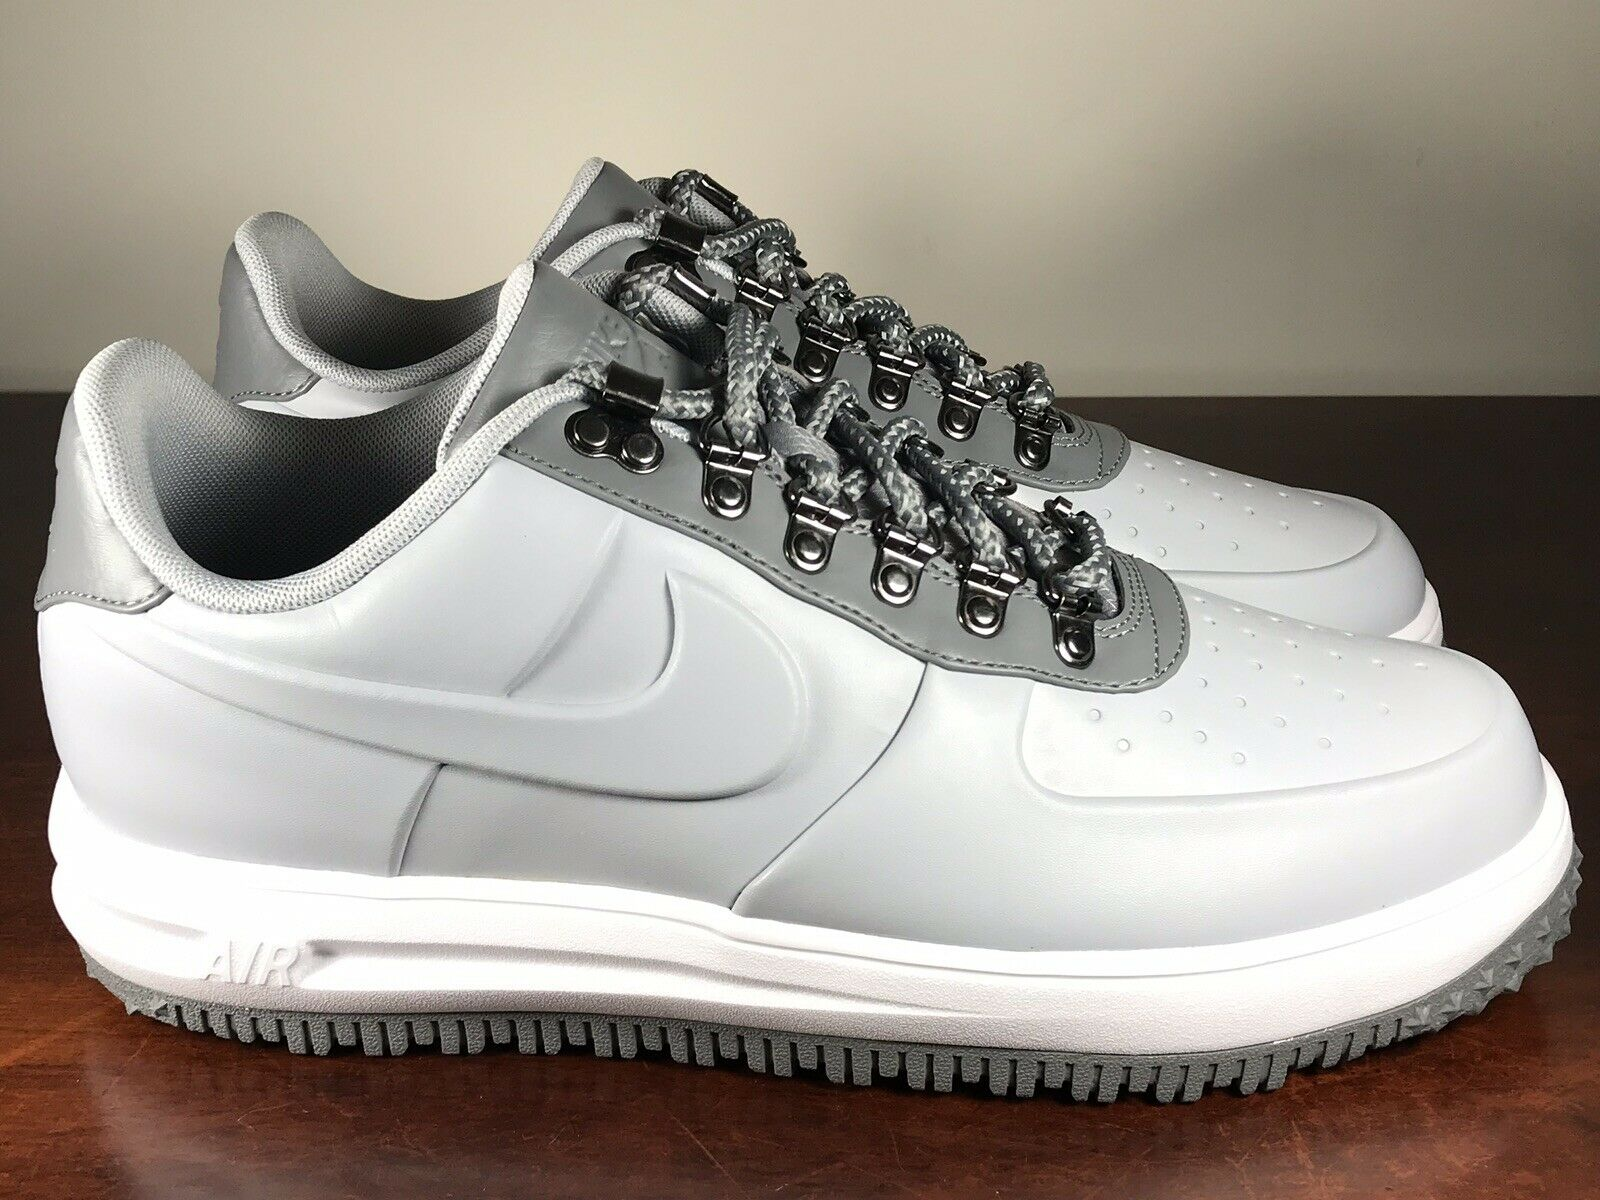 Men's Nike Lunar Air Force 1 Duckboot Boots Cool Grey AA1125-002 Size 10.5